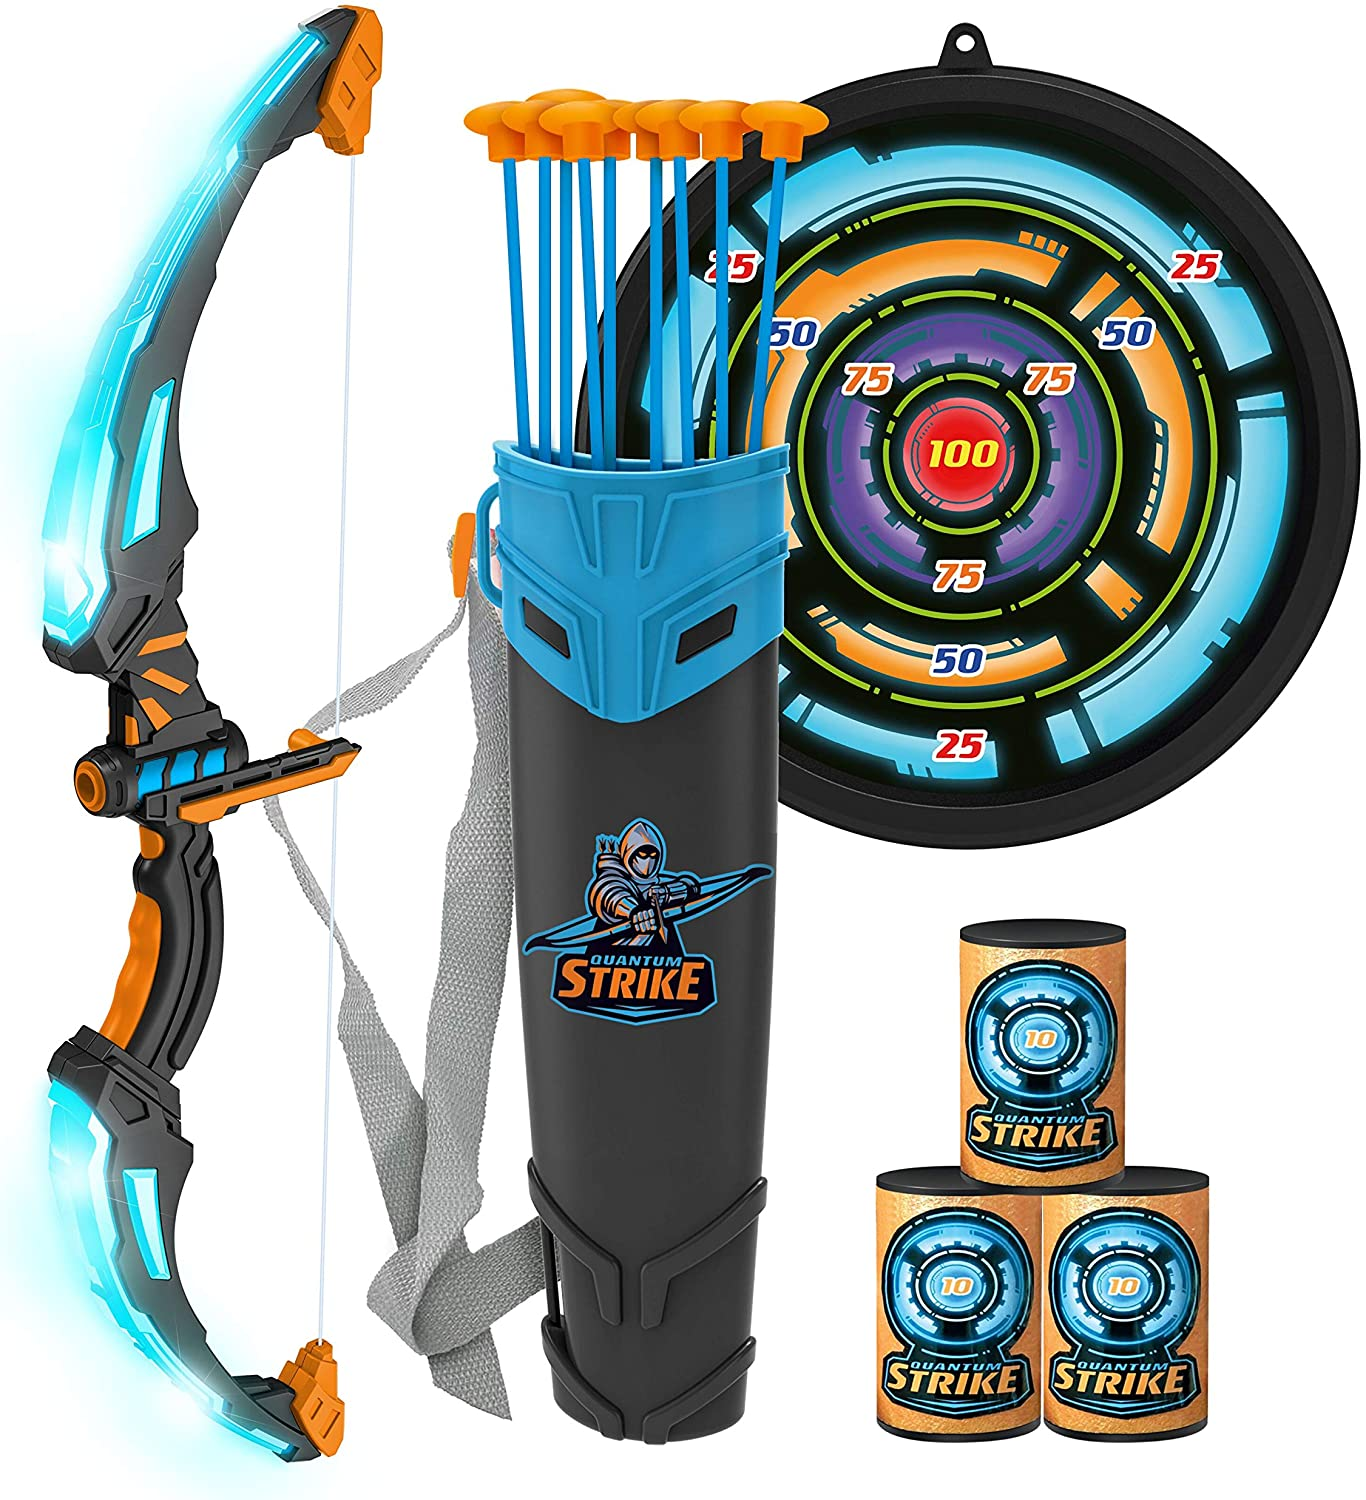 JOYIN Bow and Arrow Archery Toy Set for Kids, Light Up Archery Play Set with Luminous Bow, 9 Suction Cups Arrows, Targets, and Quiver